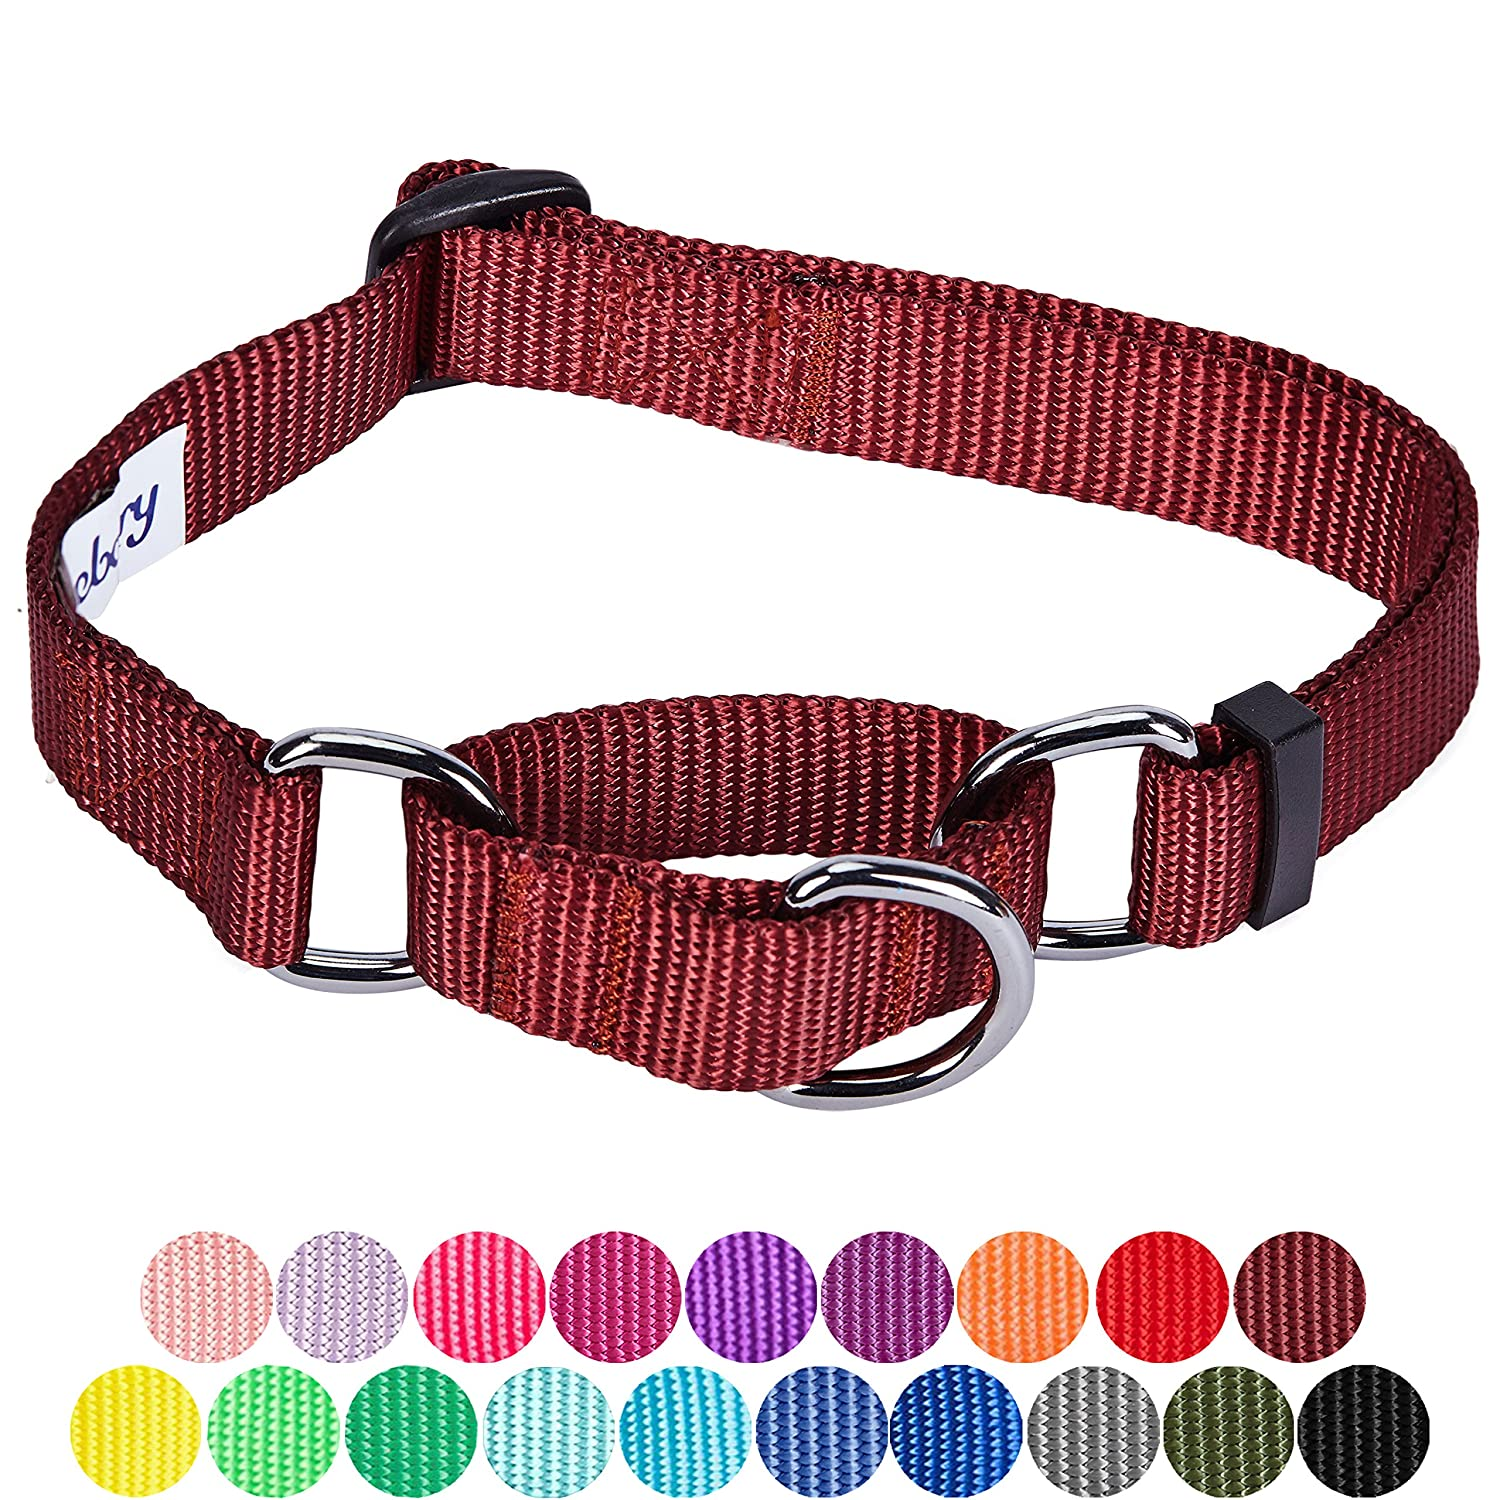 Small Blueberry Pet Safety Training Martingale Dog Collar Emerald Heavy Duty Nylon Adjustable Collars for Dogs